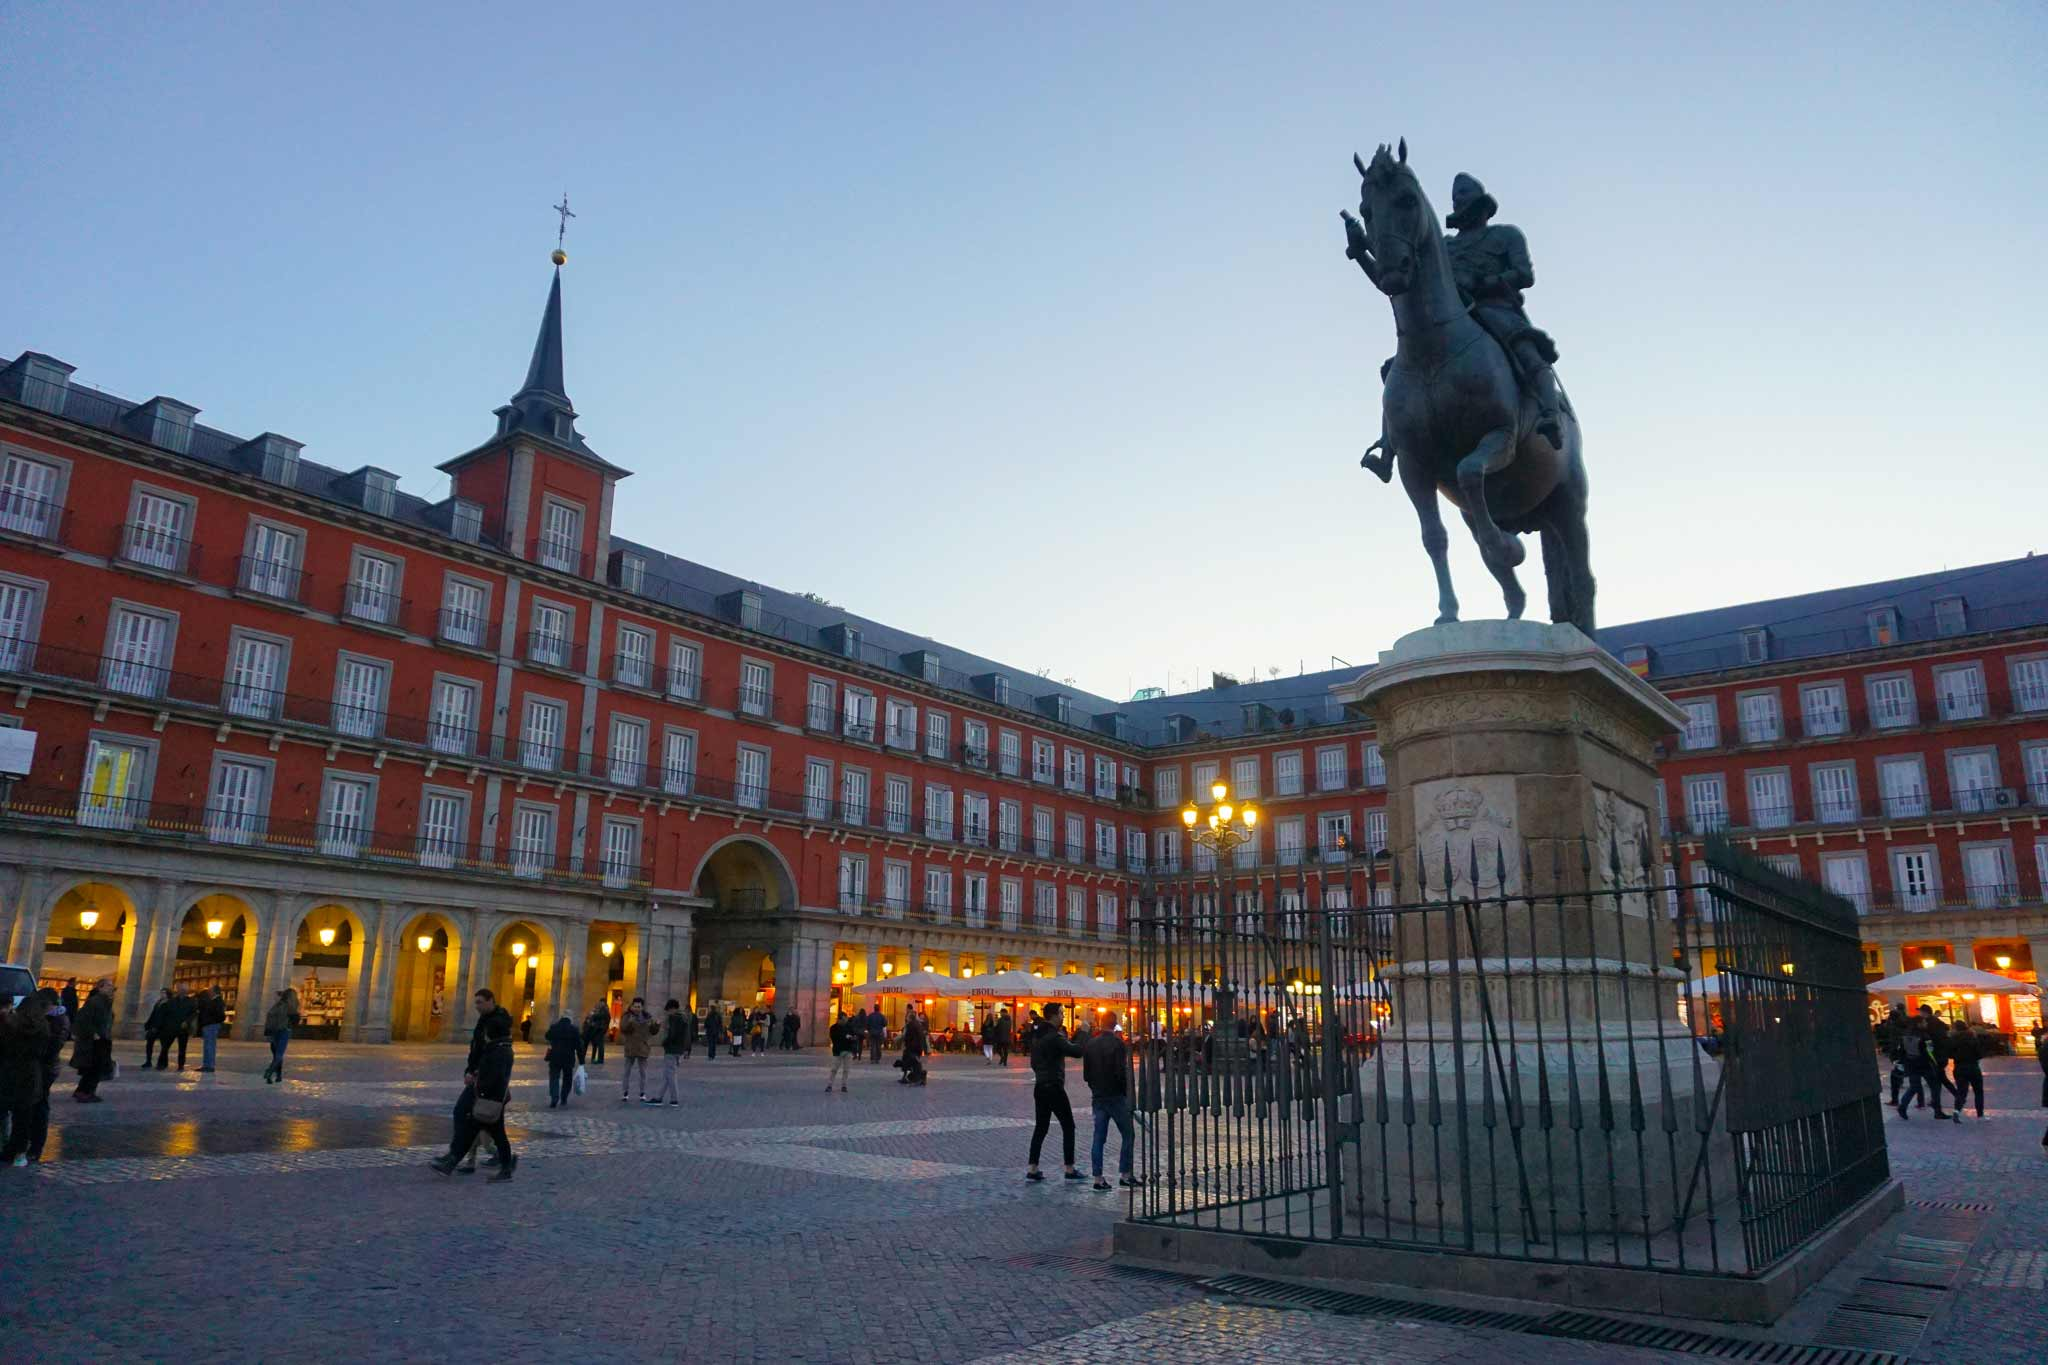 Picture of Plaza Mayor in Madrid, Spain with an equestrian statue.